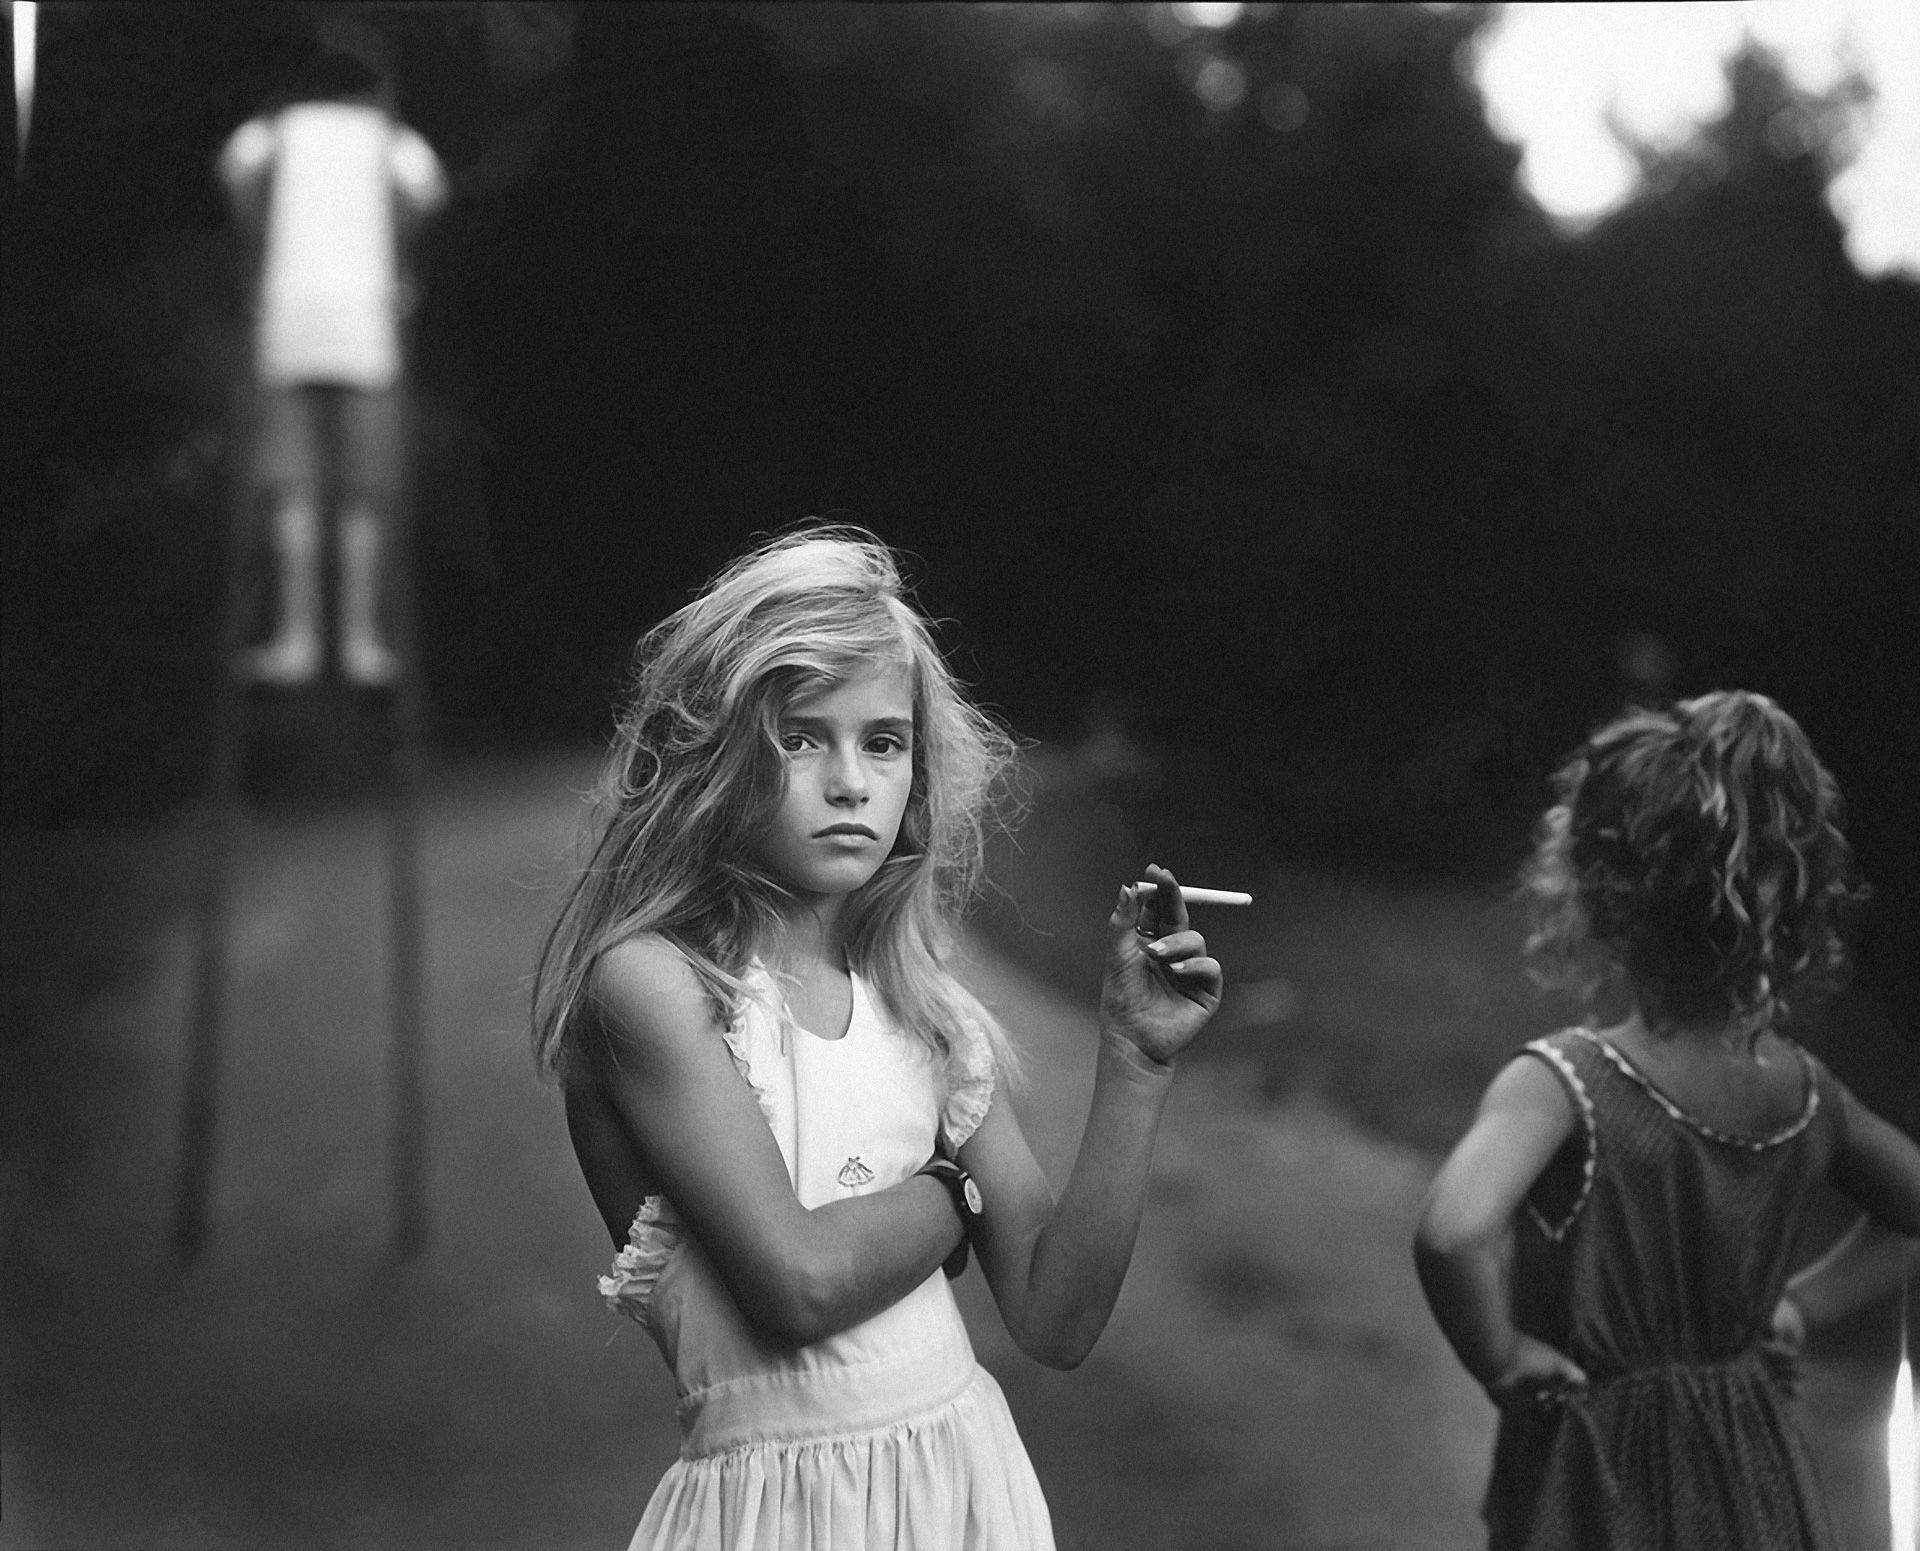 Candy Cigarette Photographed By Sally Mann Is Possibly One The Most Iconic Images Of 20th Century Photography Main Focus Picture Displays A